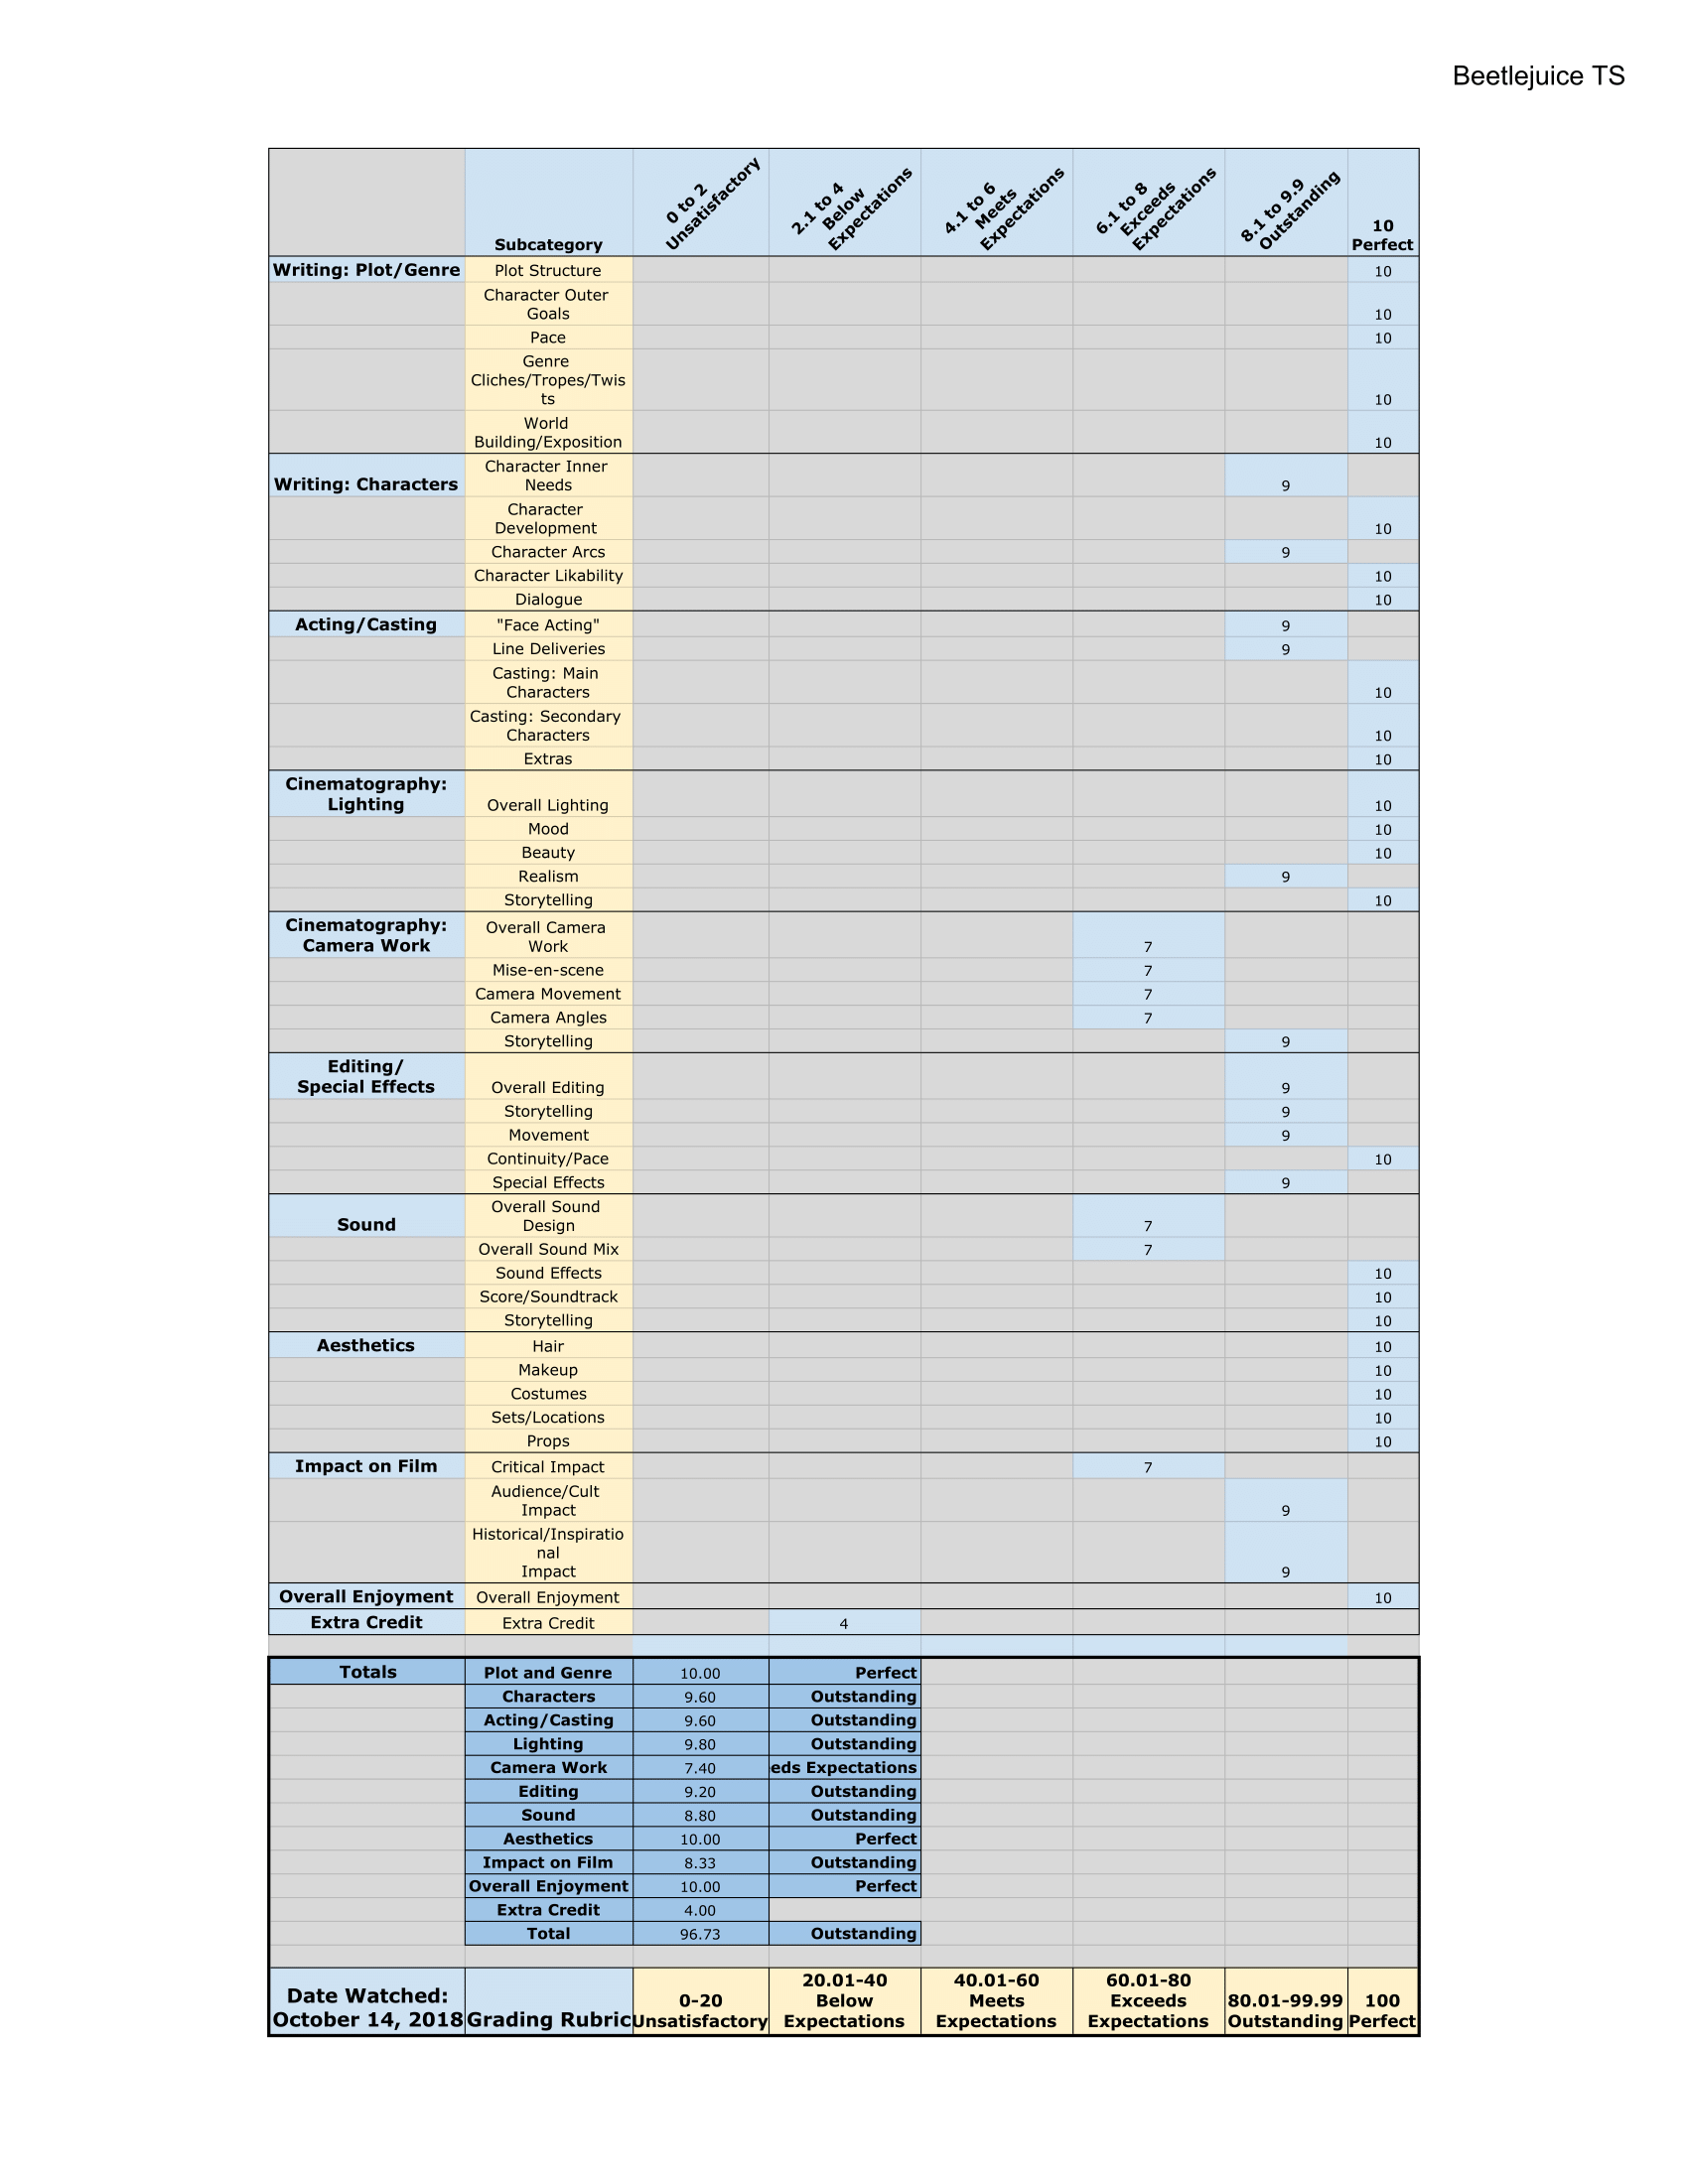 Untitled spreadsheet - Beetlejuice TS-1.png